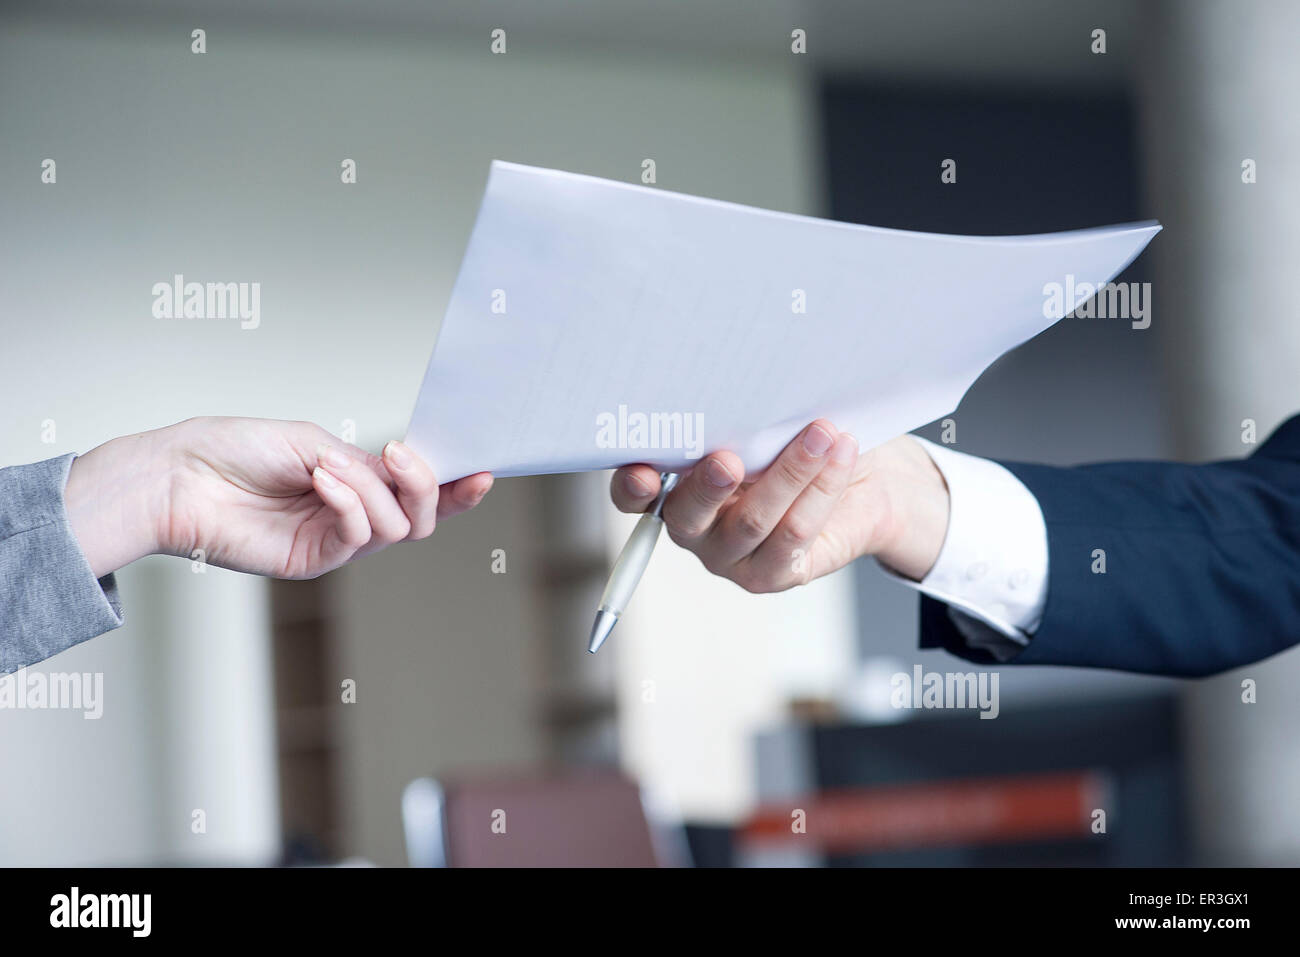 Businessman handing document to colleague, cropped - Stock Image